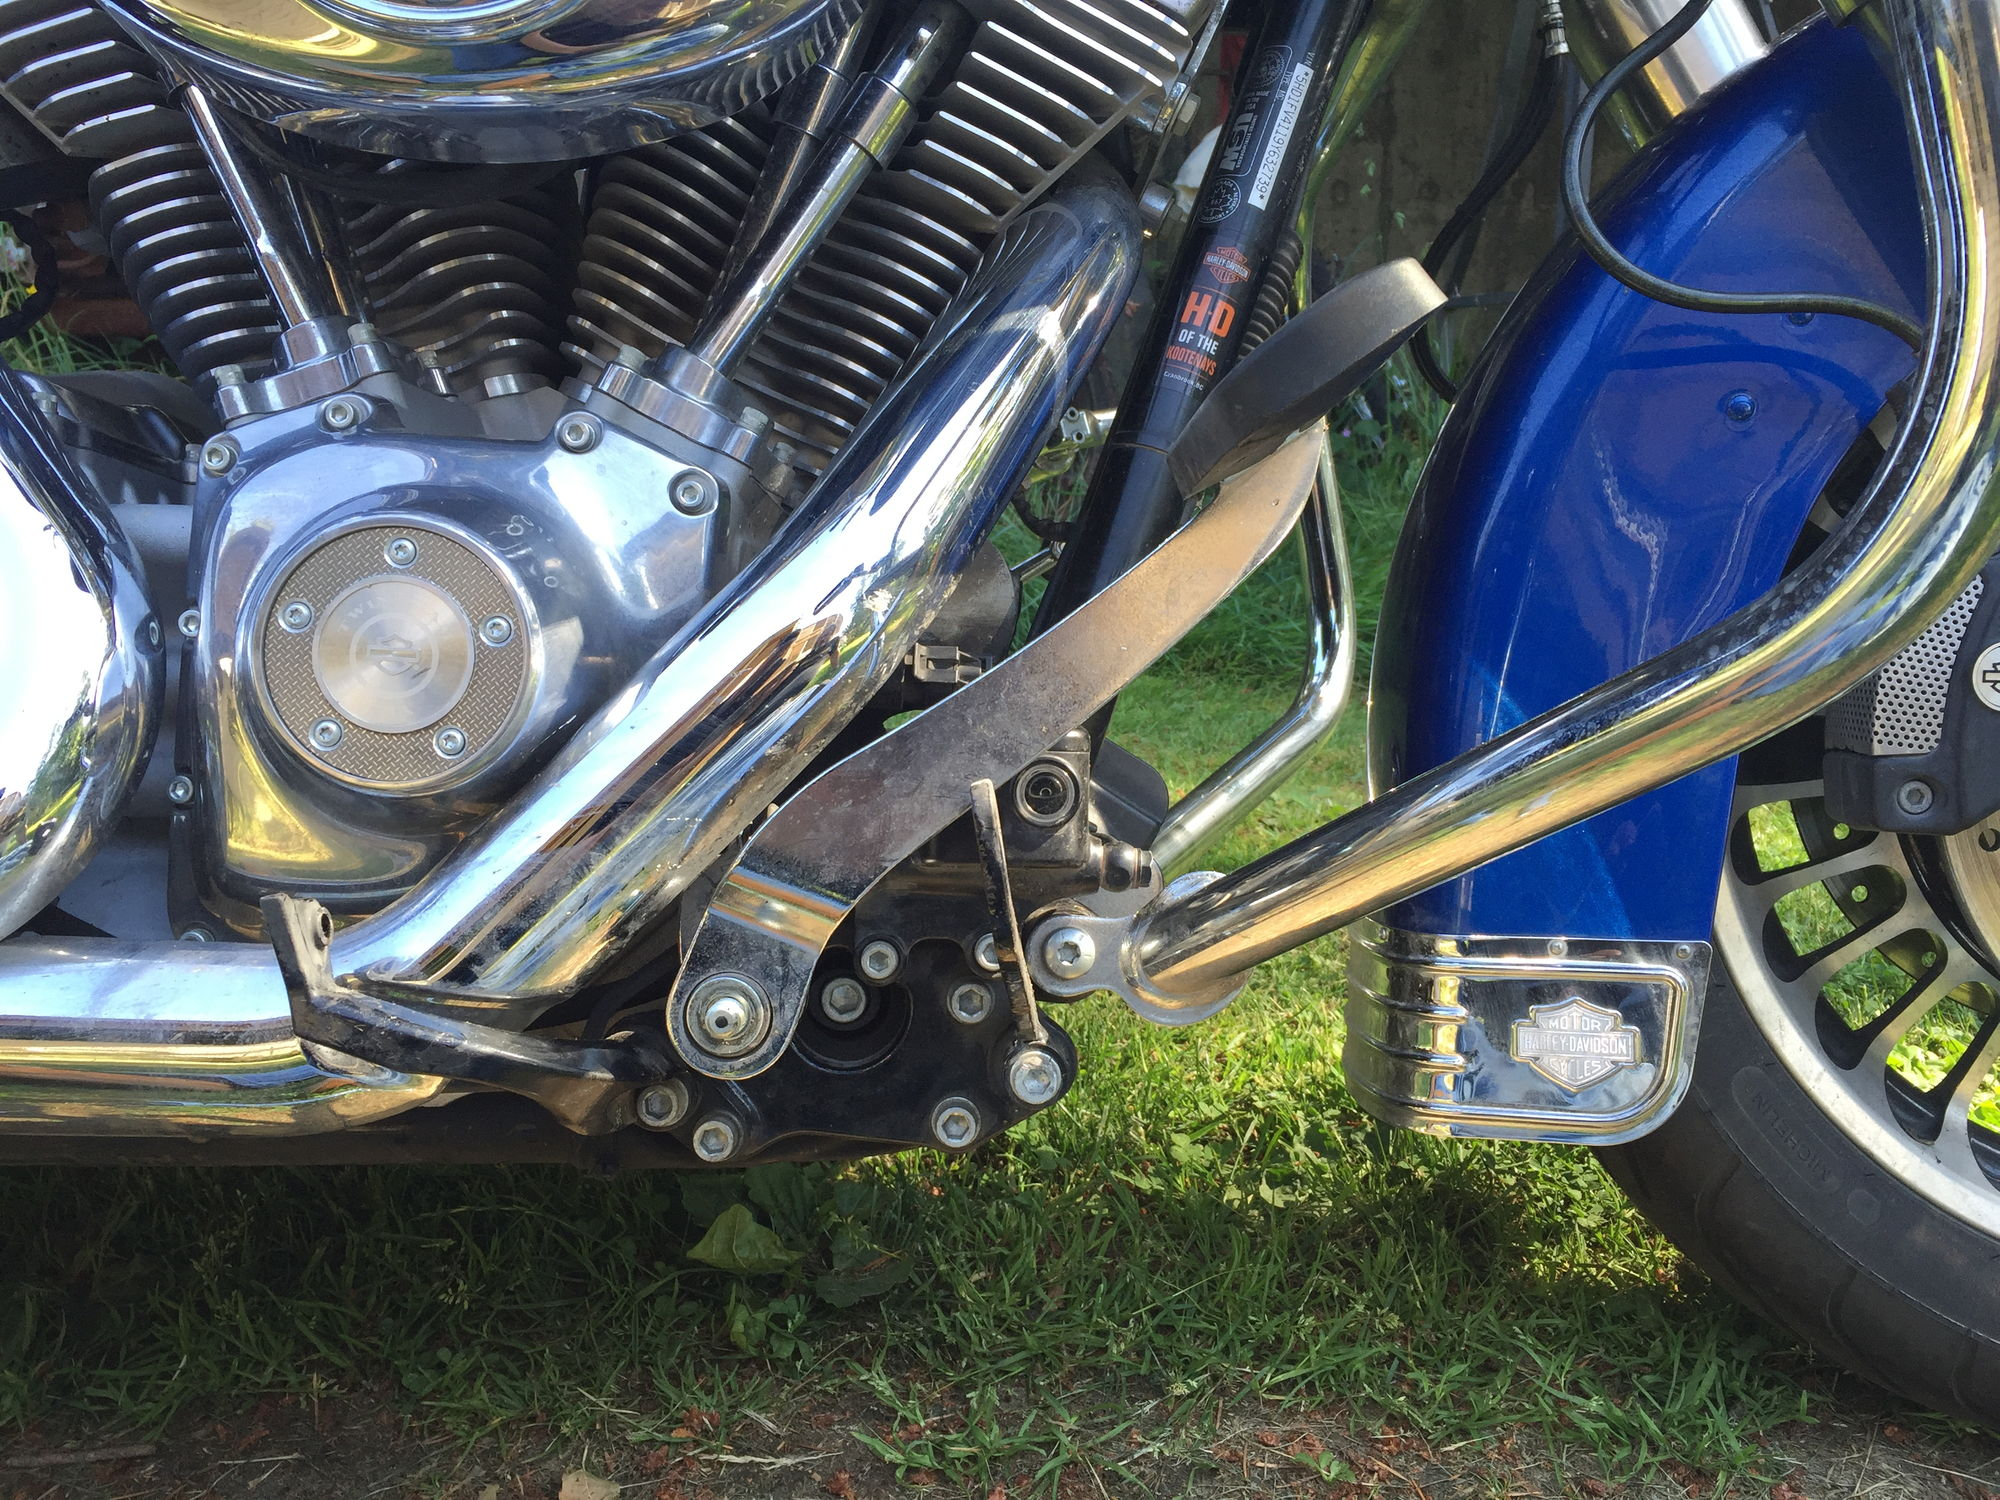 Difference Between Street Glide And Road Glide >> The Journeys of Darla .... - Page 4 - Harley Davidson Forums